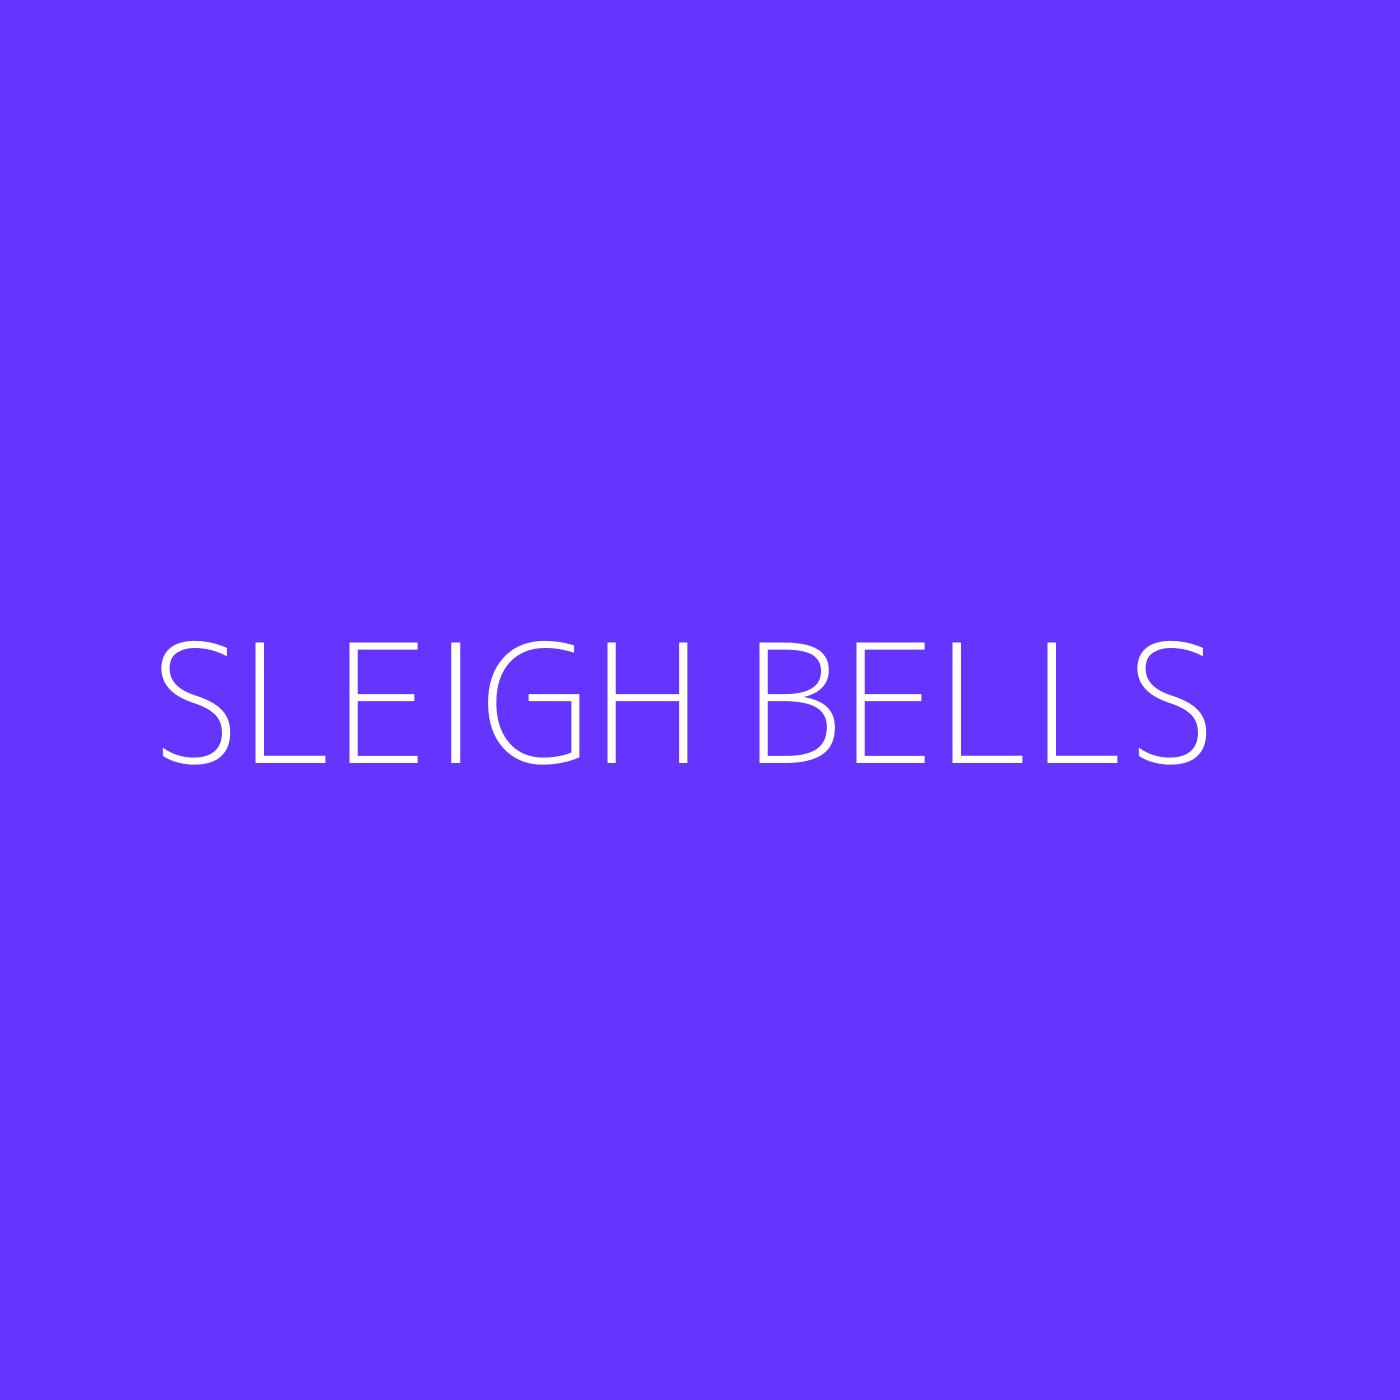 Sleigh Bells Playlist Artwork